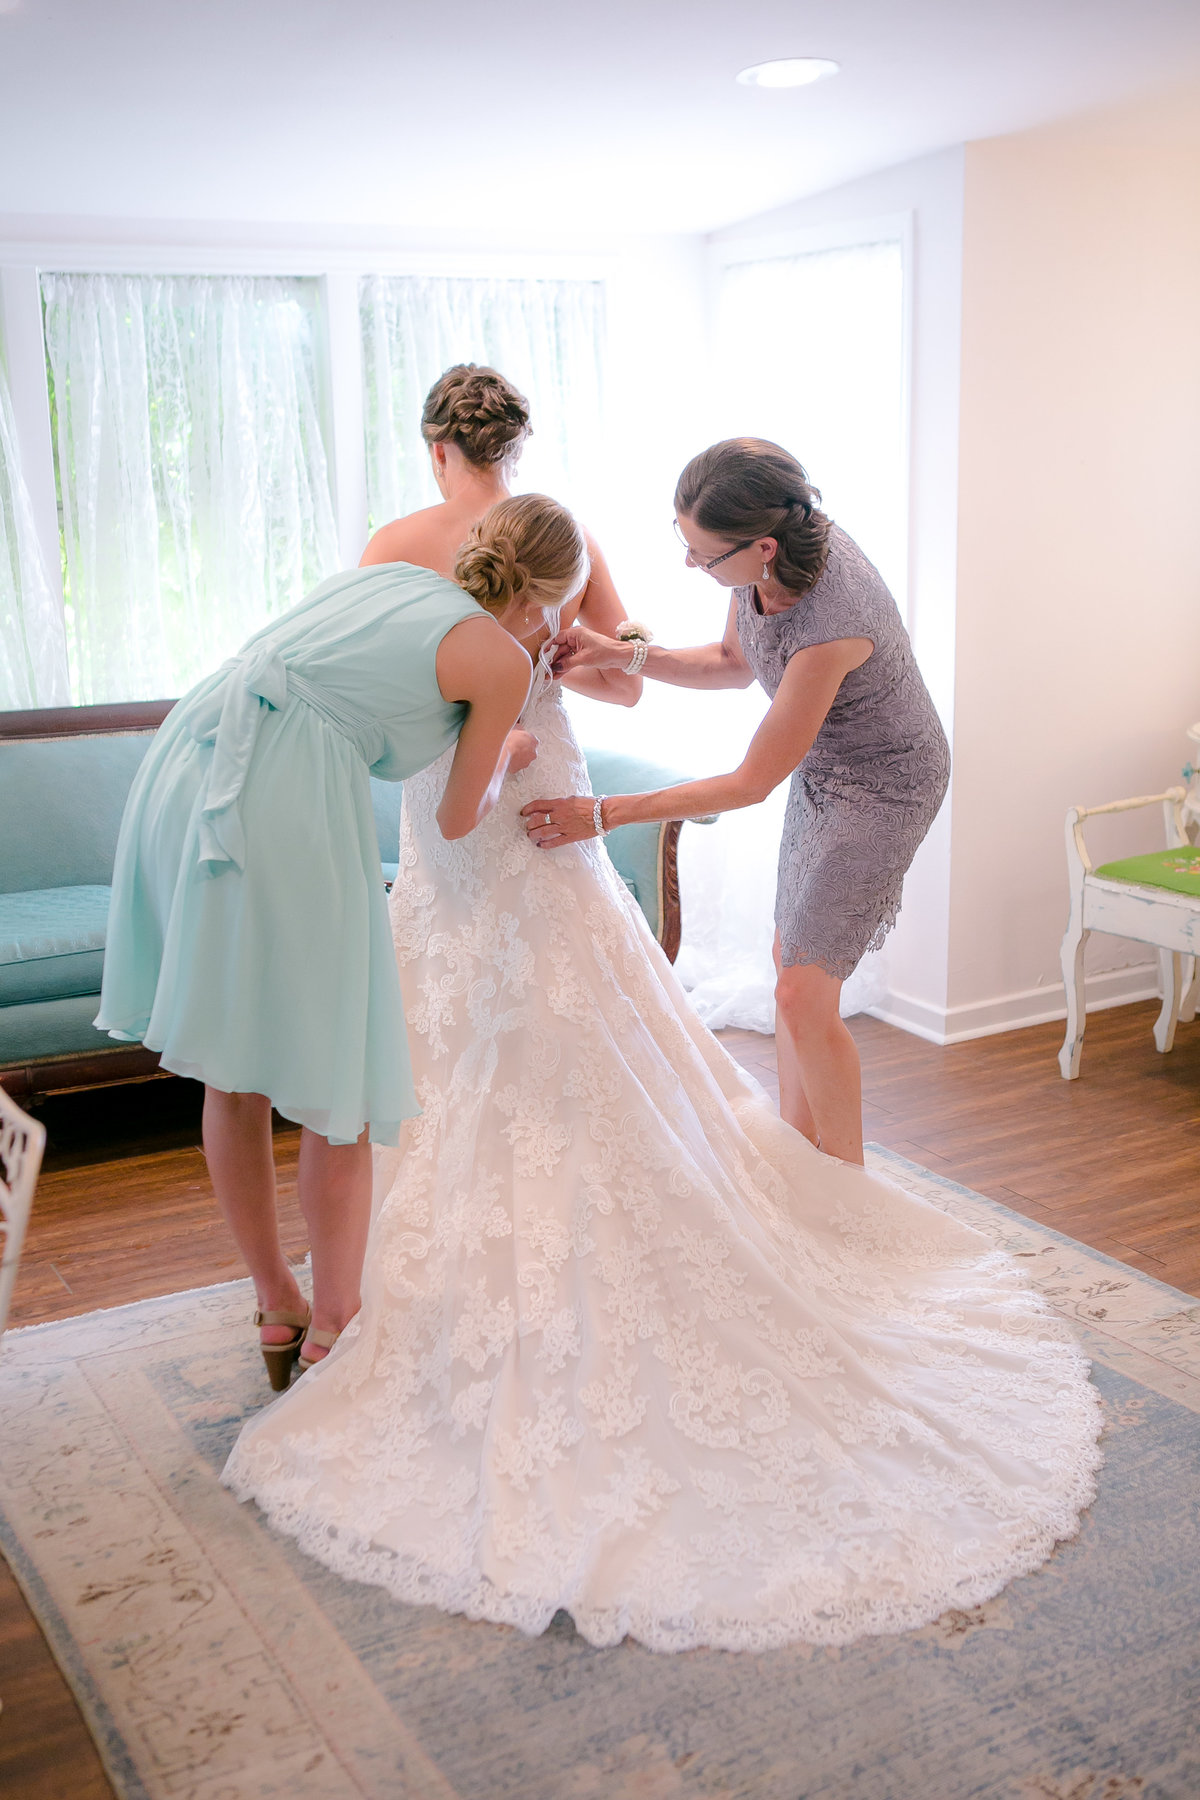 Austin Family Photographer, Tiffany Chapman Photography bride getting dress on photo